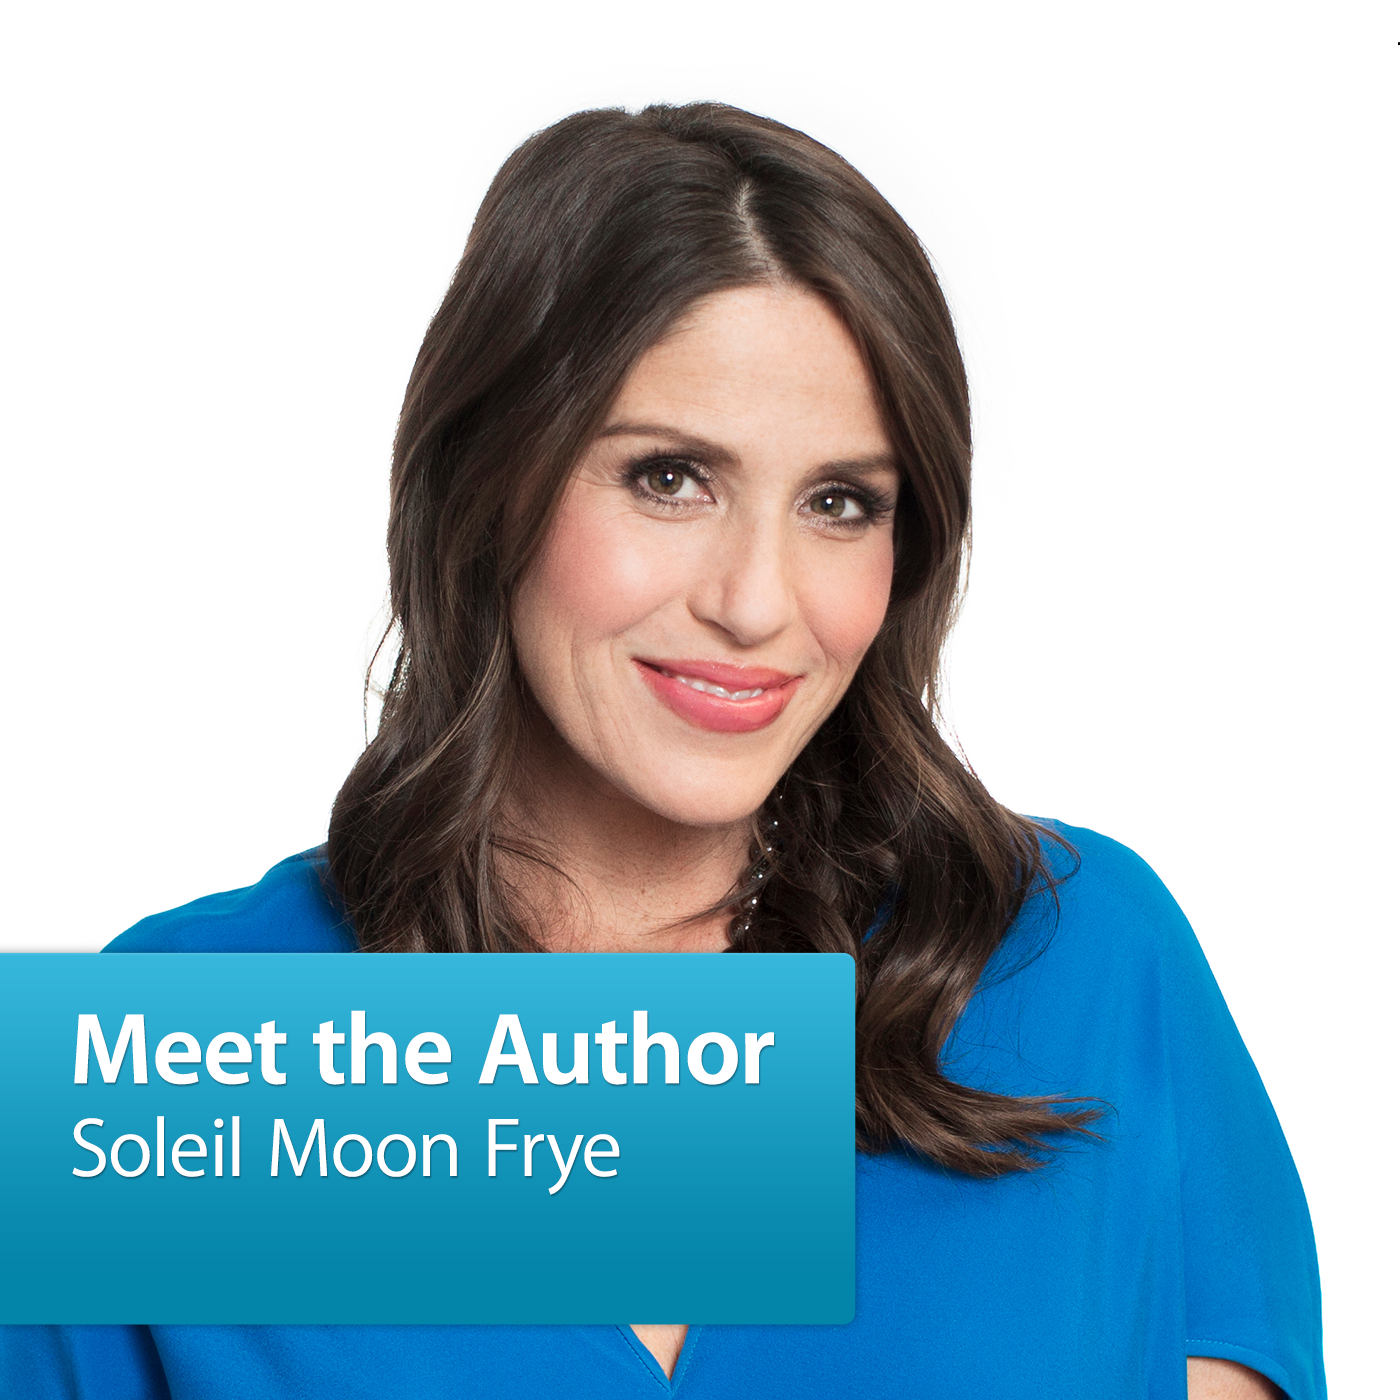 Soleil Moon Frye: Meet the Author